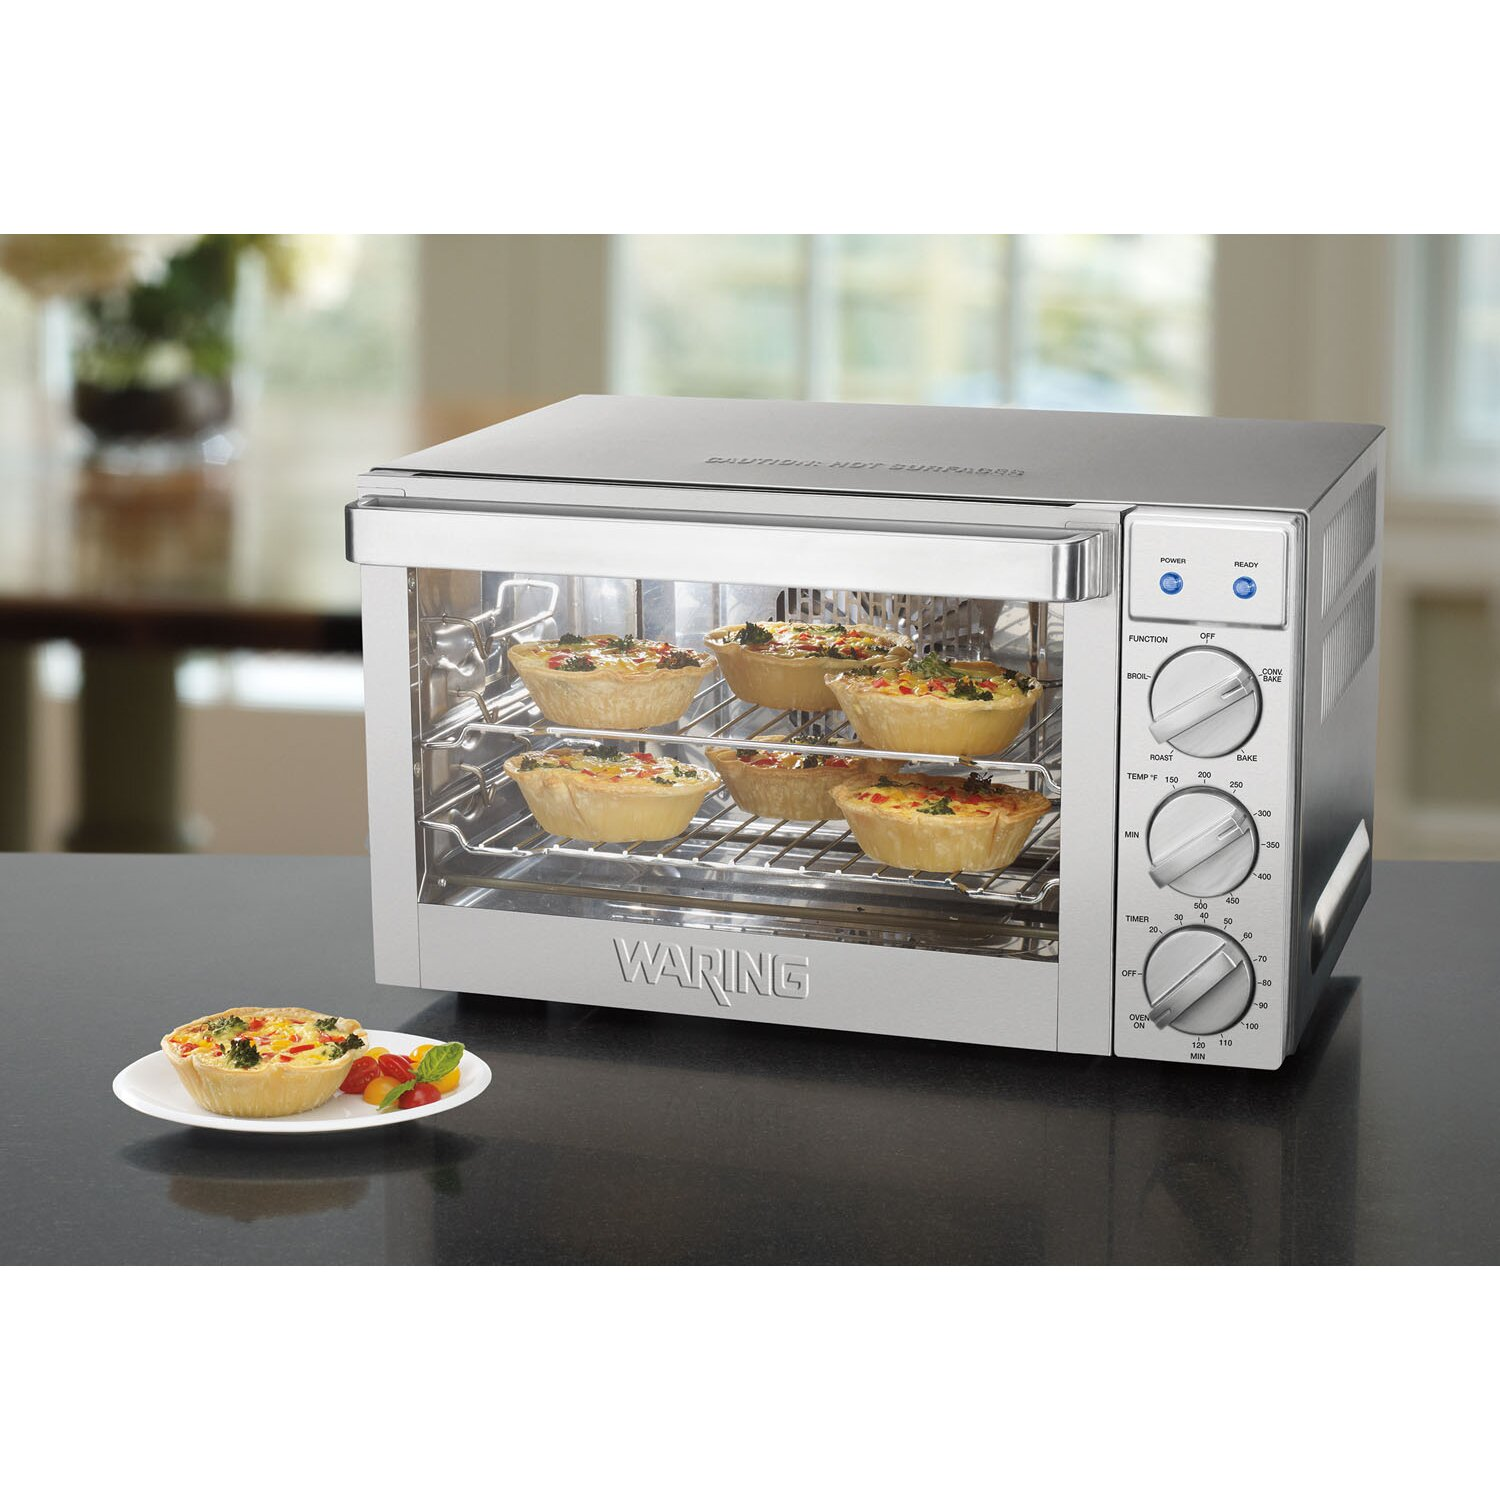 Commercial Countertop Pizza Oven Reviews : ... Cubic Foot Commercial Countertop Convection Oven & Reviews Wayfair